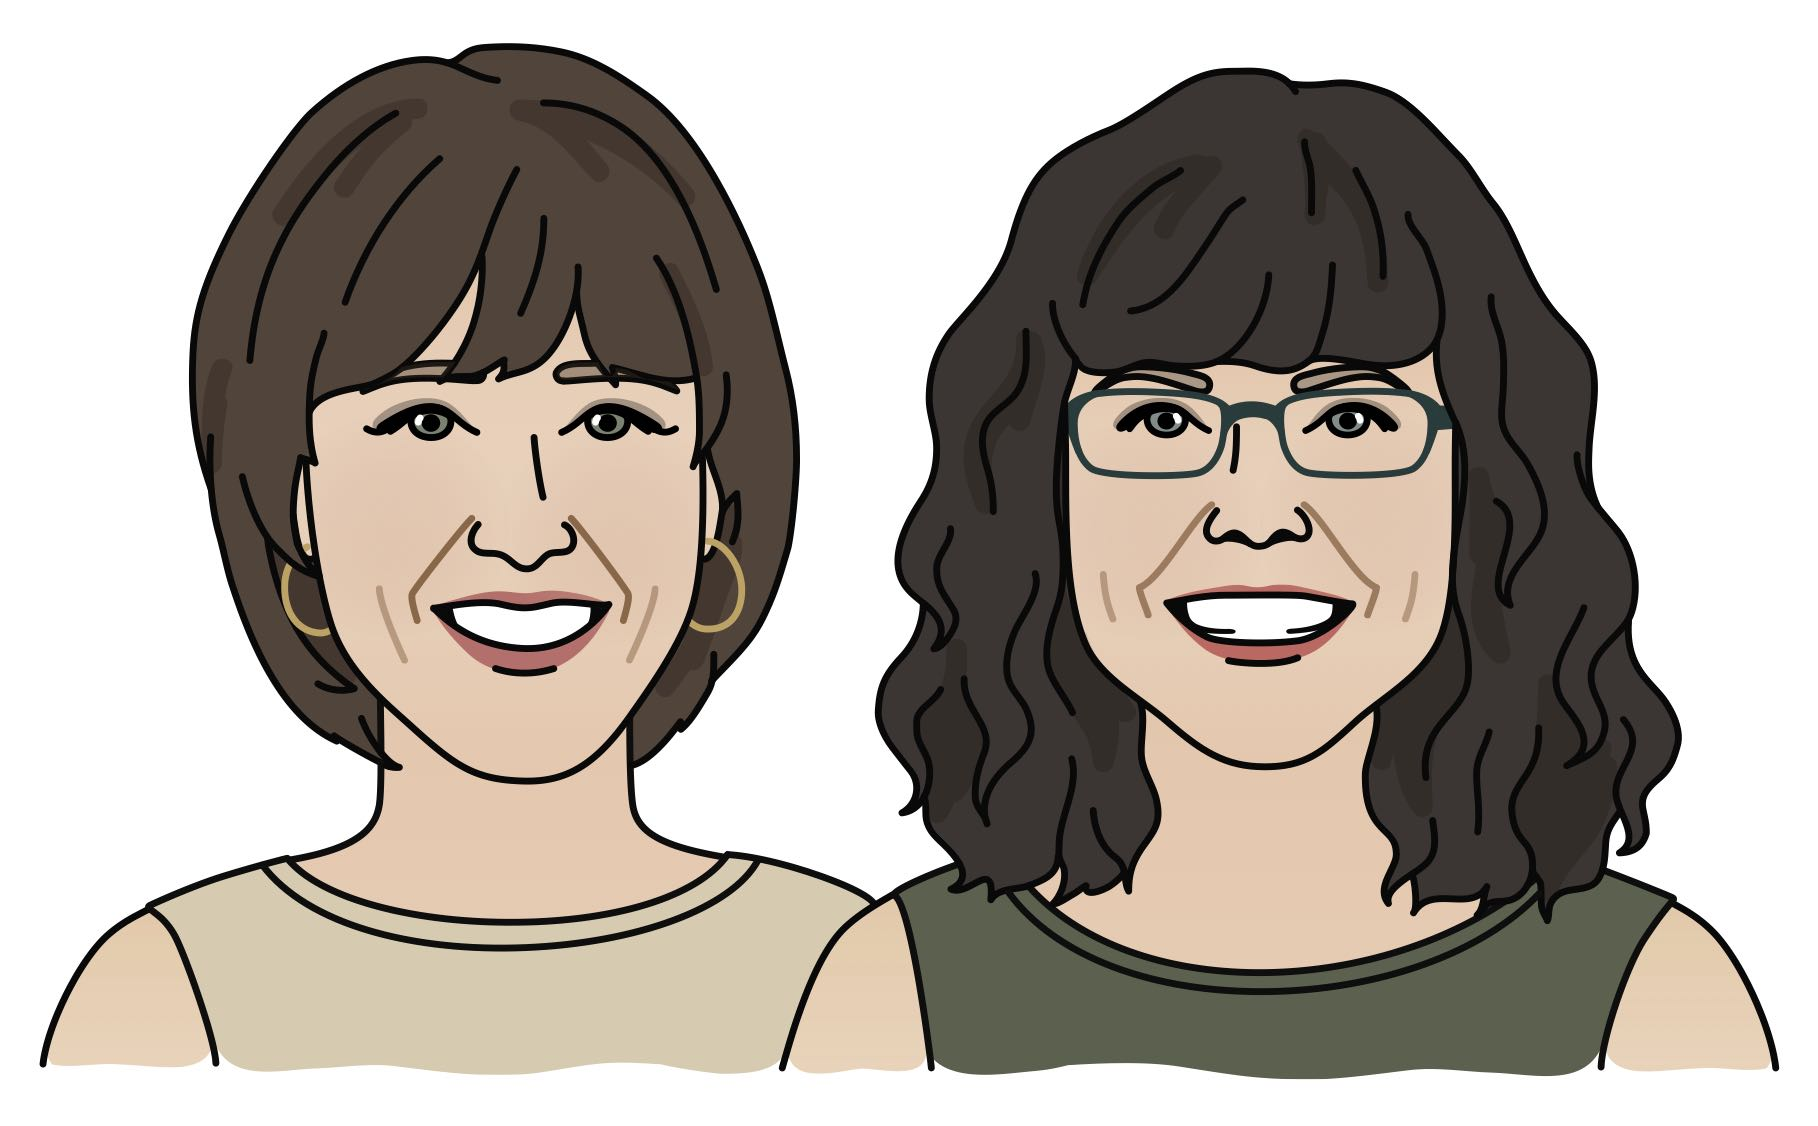 NEXT UP: BETSY WEST and JULIE COHEN -